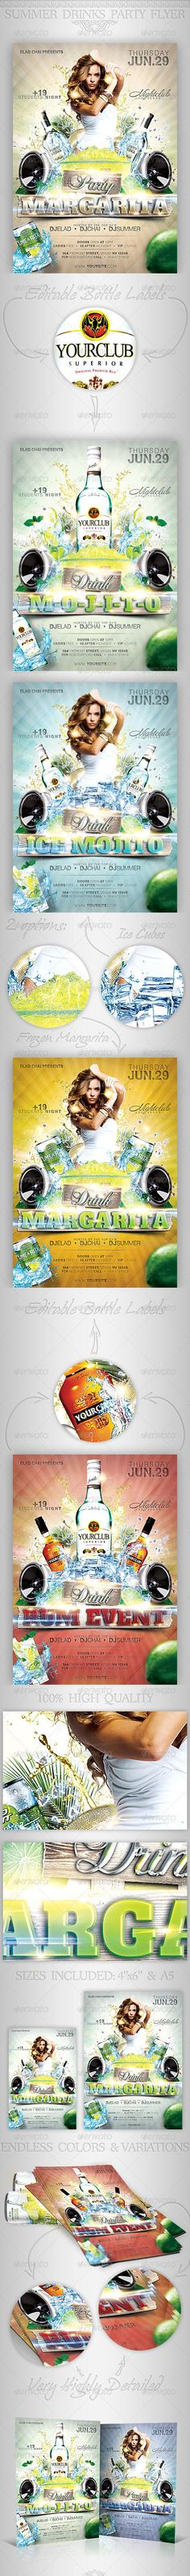 A modern fresh design with a unique touch, perfect for clubs and events 2 PSD files & Fully layerd and very well organized in color coded groups Easy to achieve endless variations & color options Easy image replacement Easy to edit te